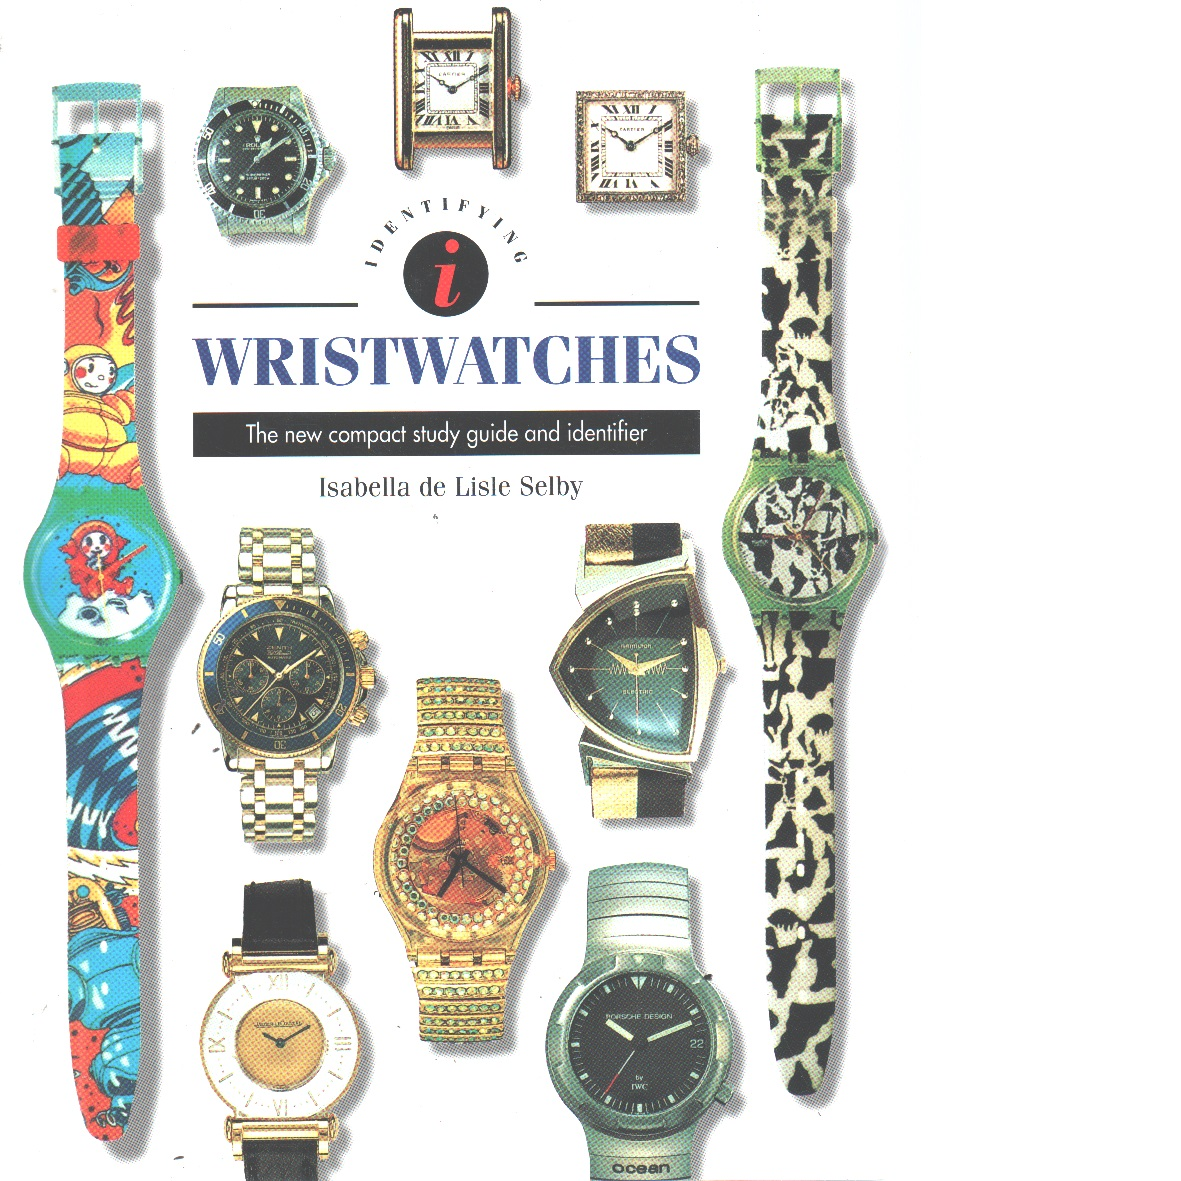 Identifying wristwatches - De L. Selby, Isabella